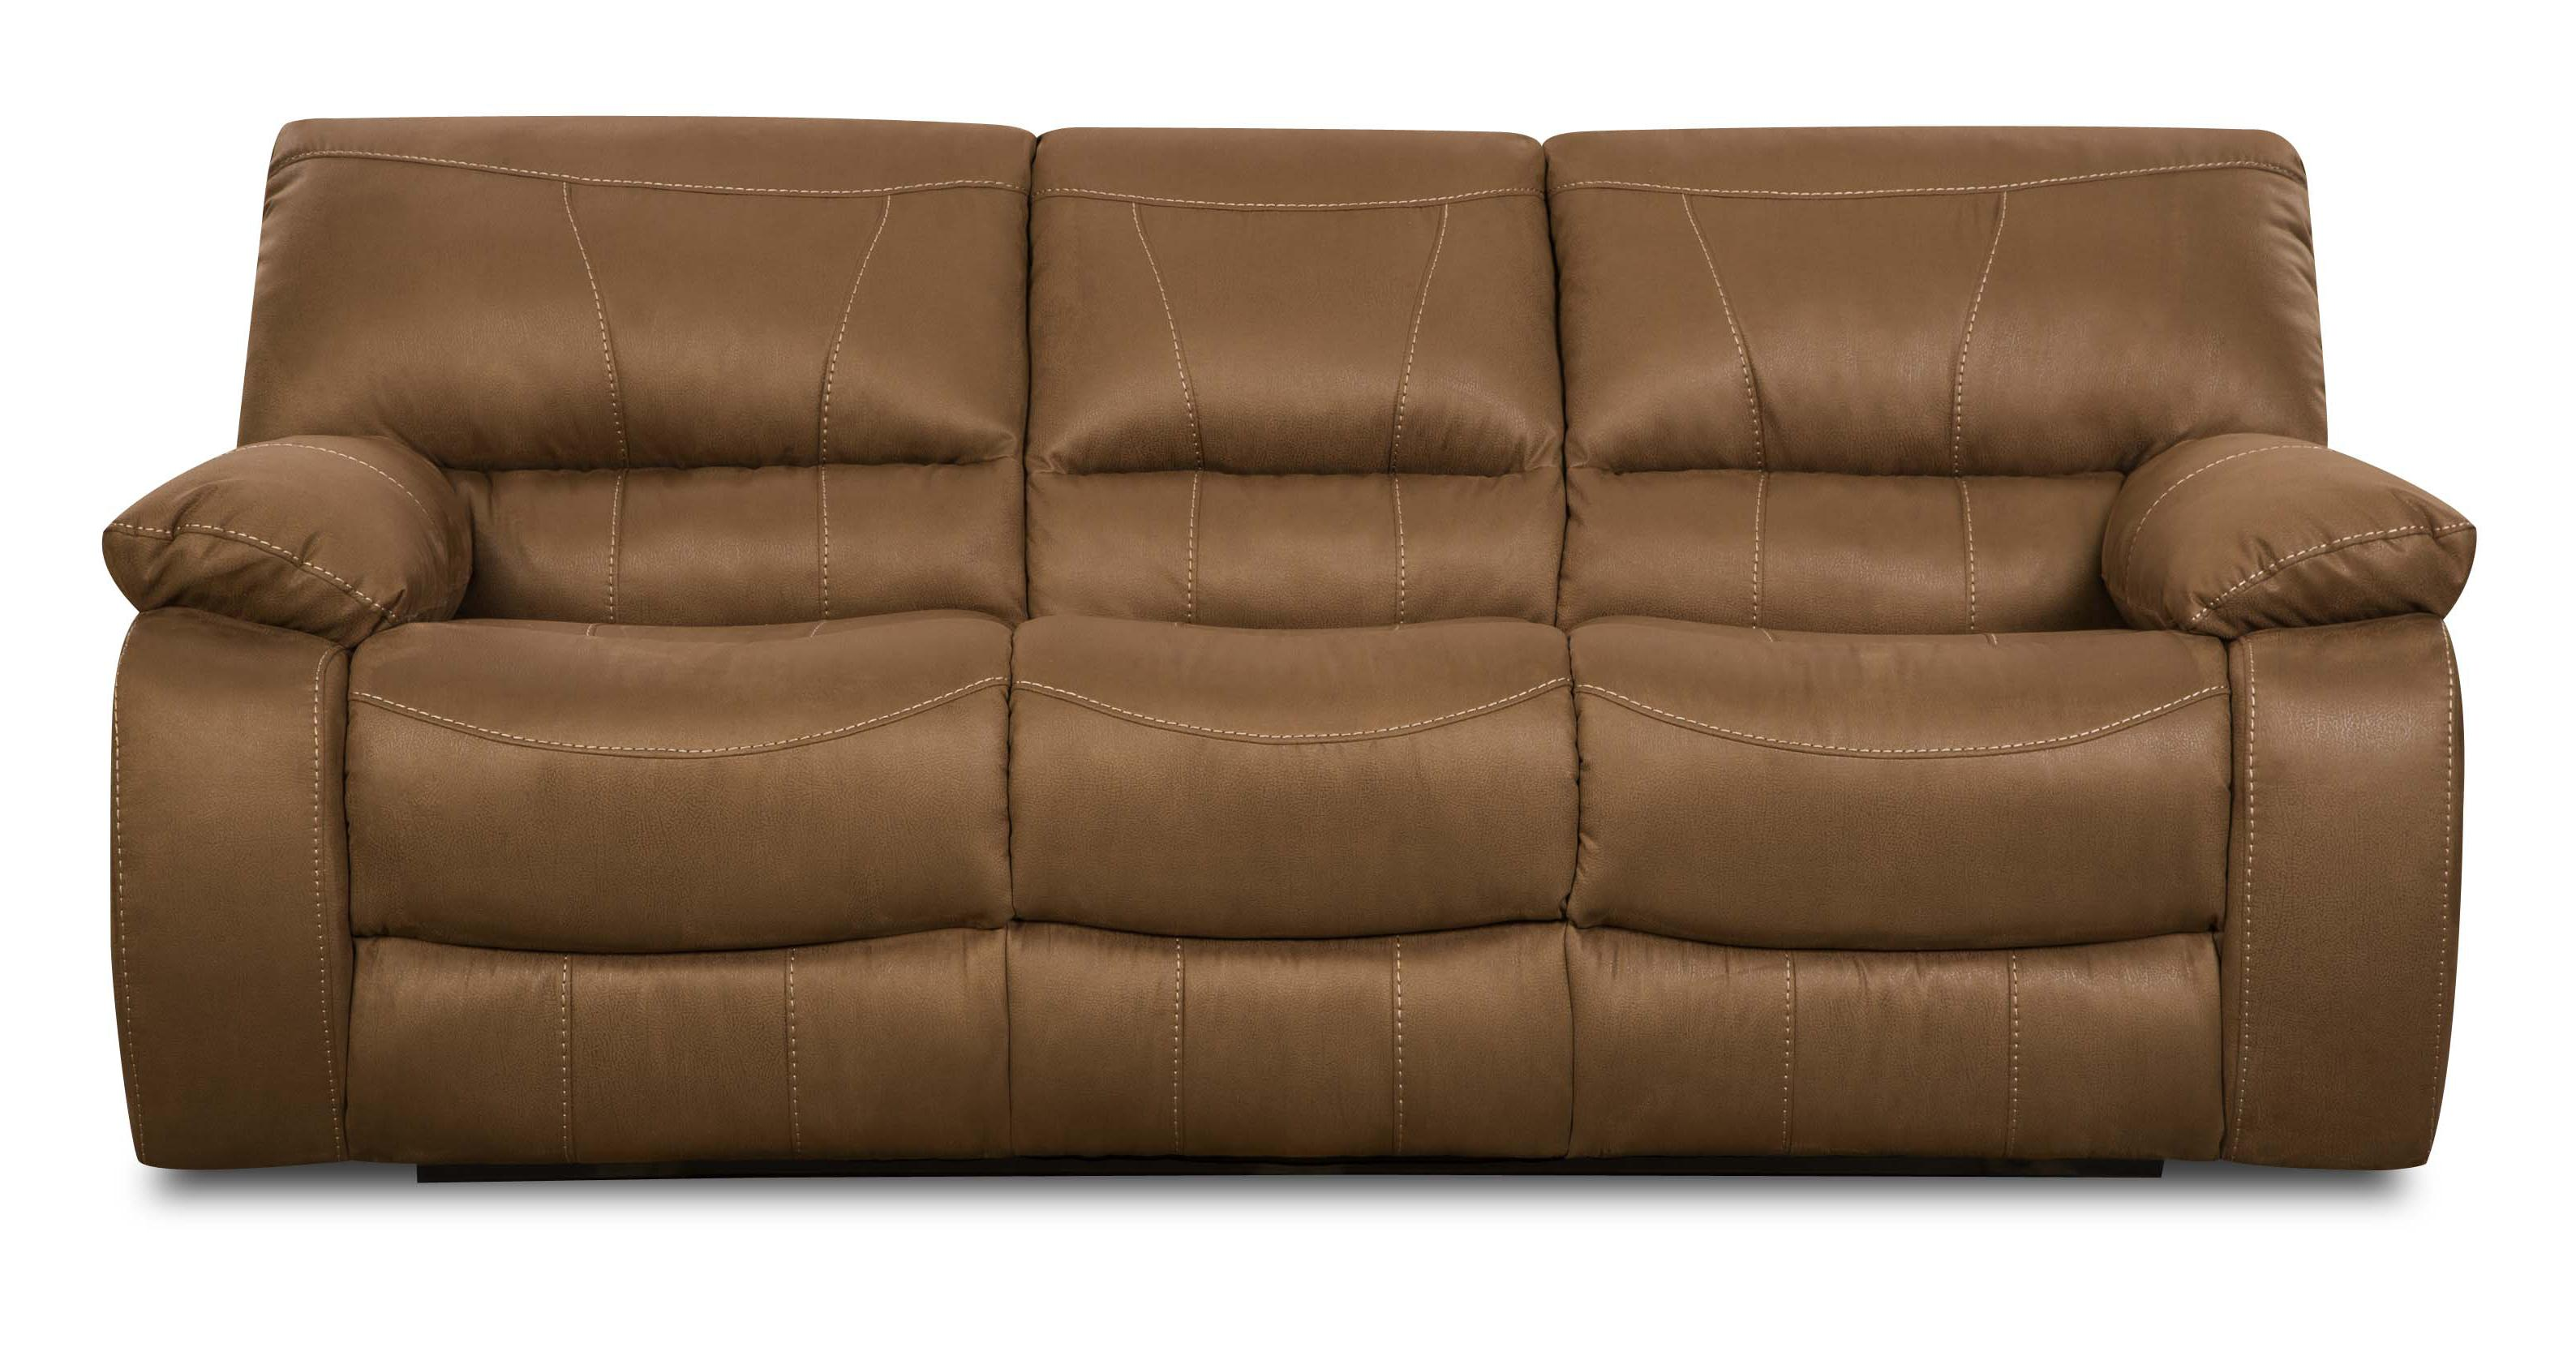 Simmons Upholstery 50240 Casual Reclining Sofa - Item Number: 50240 Motion Sofa Sepia